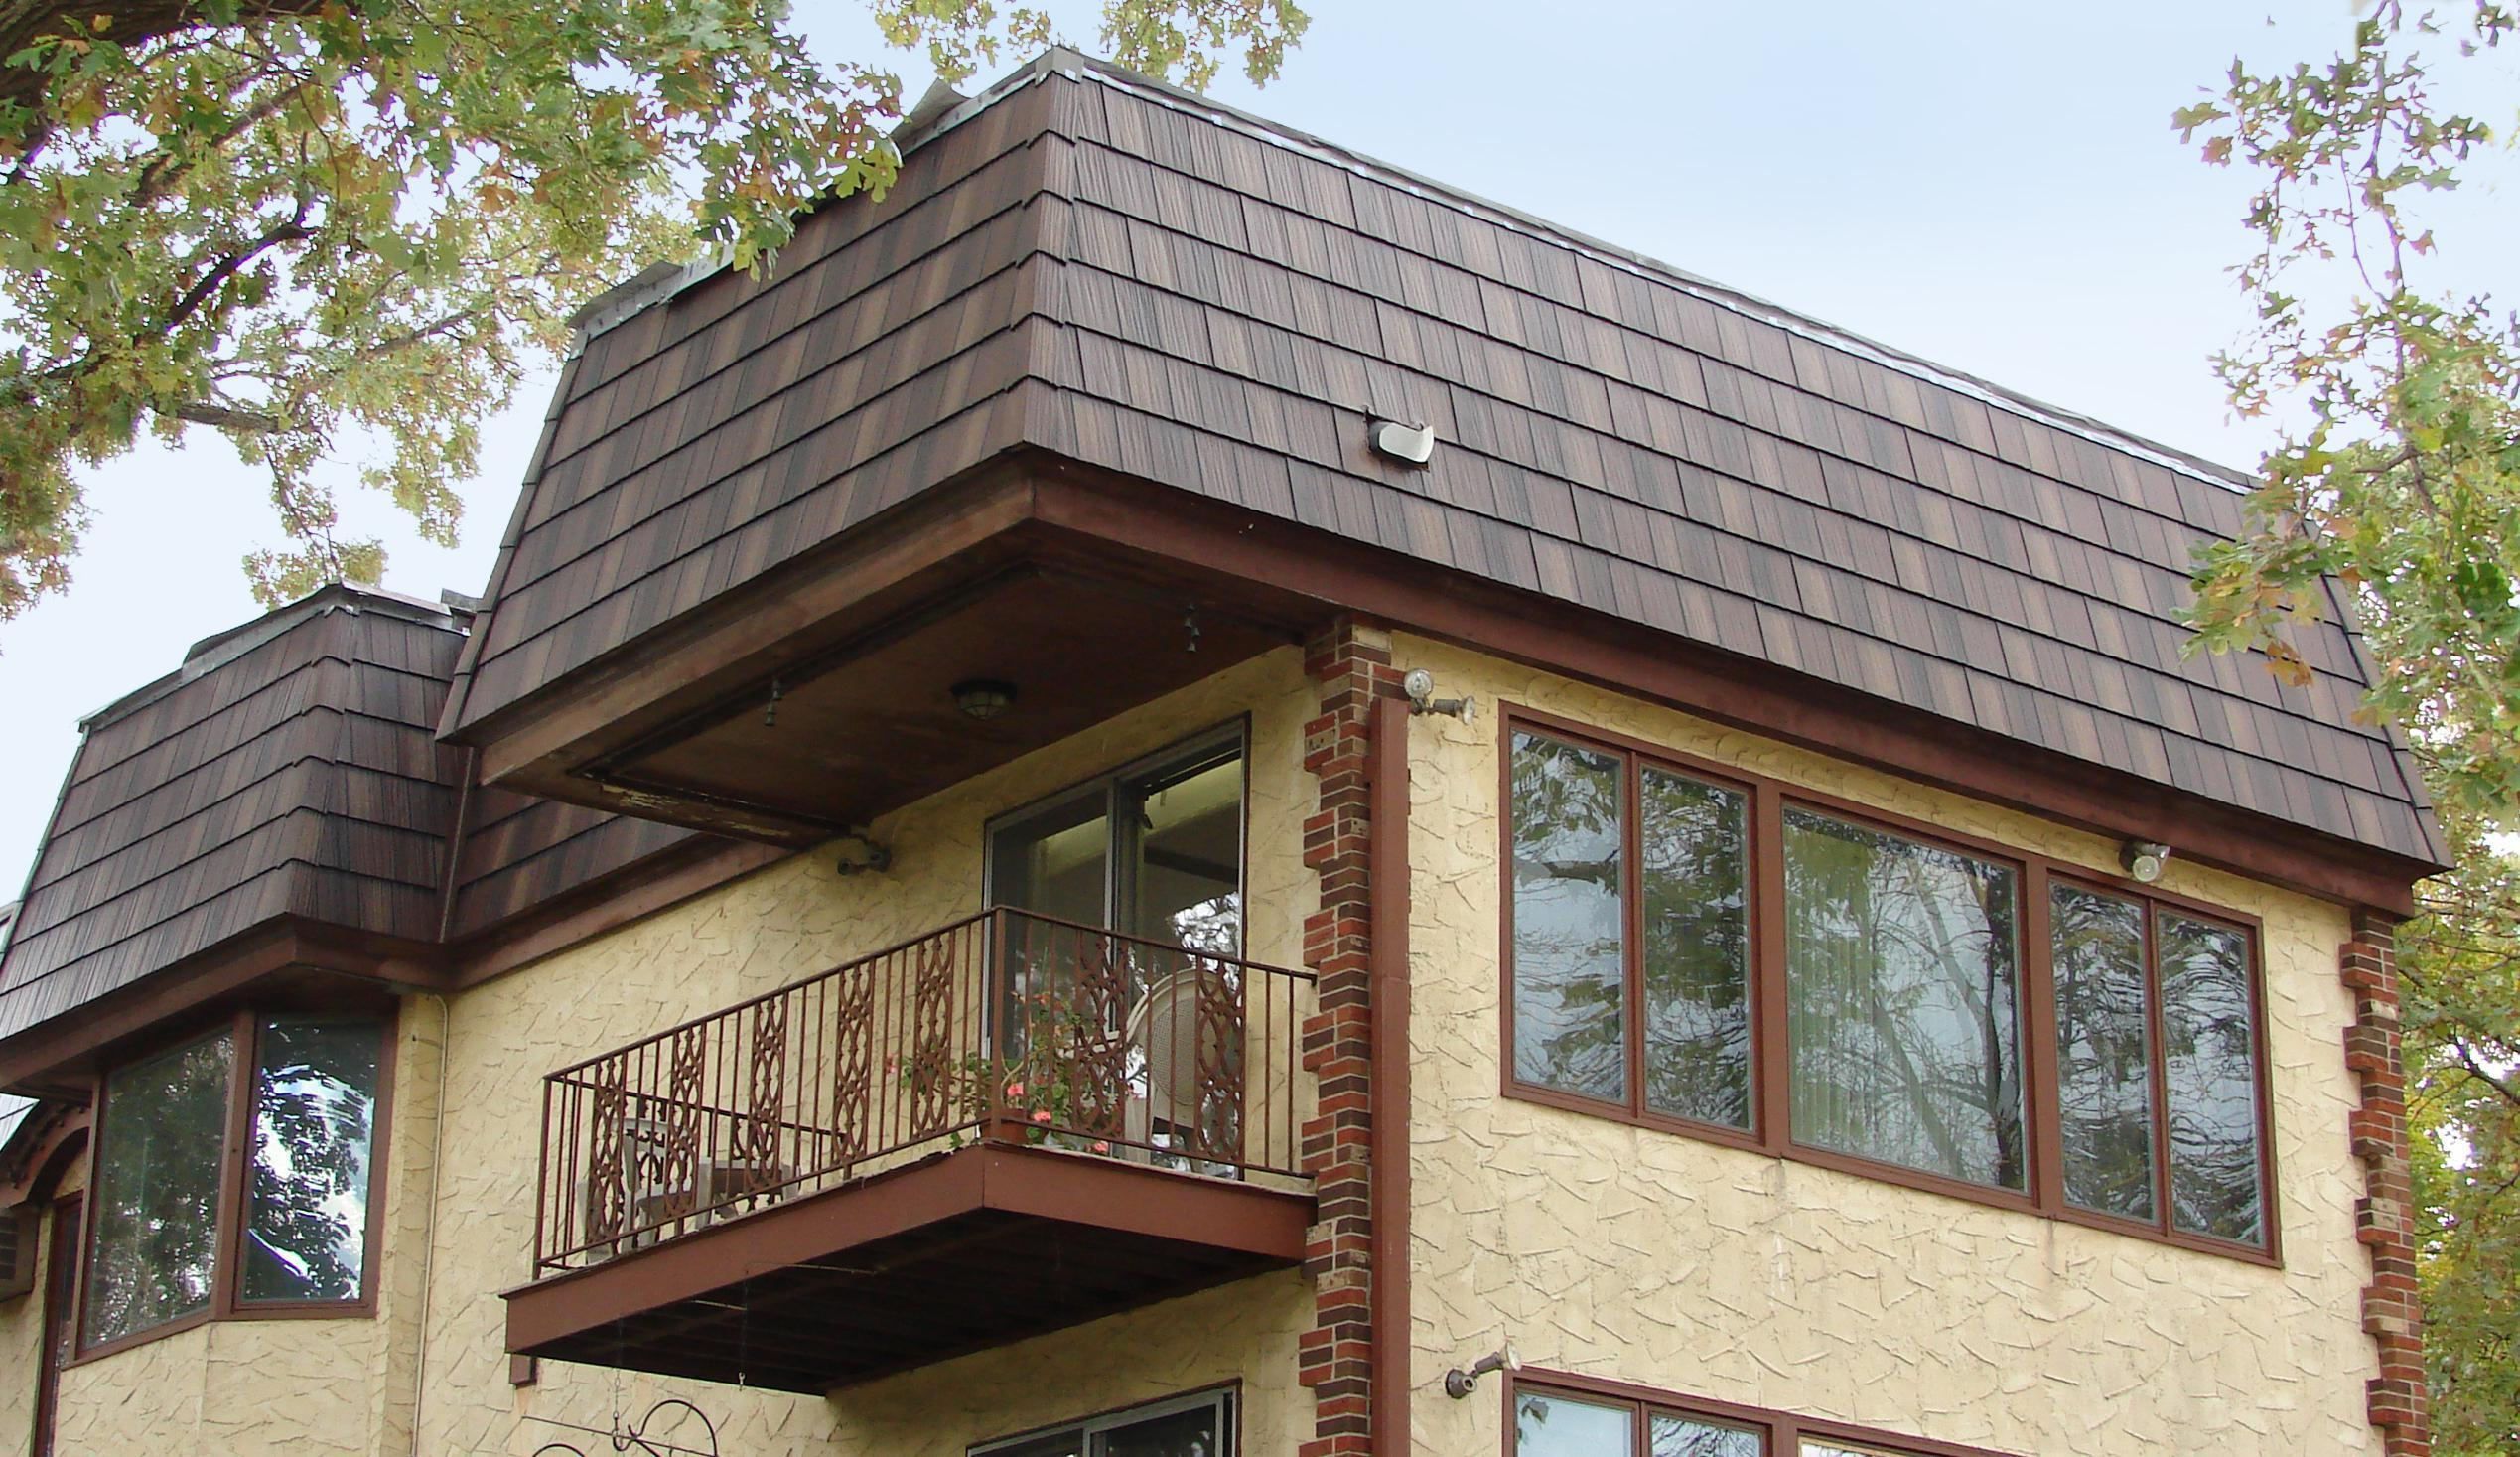 Arrowline Shake Enhanced Royal Brown Blend was selected and installed during a remodel project to capture the charm of the building while protecting the investment for a lifetime.